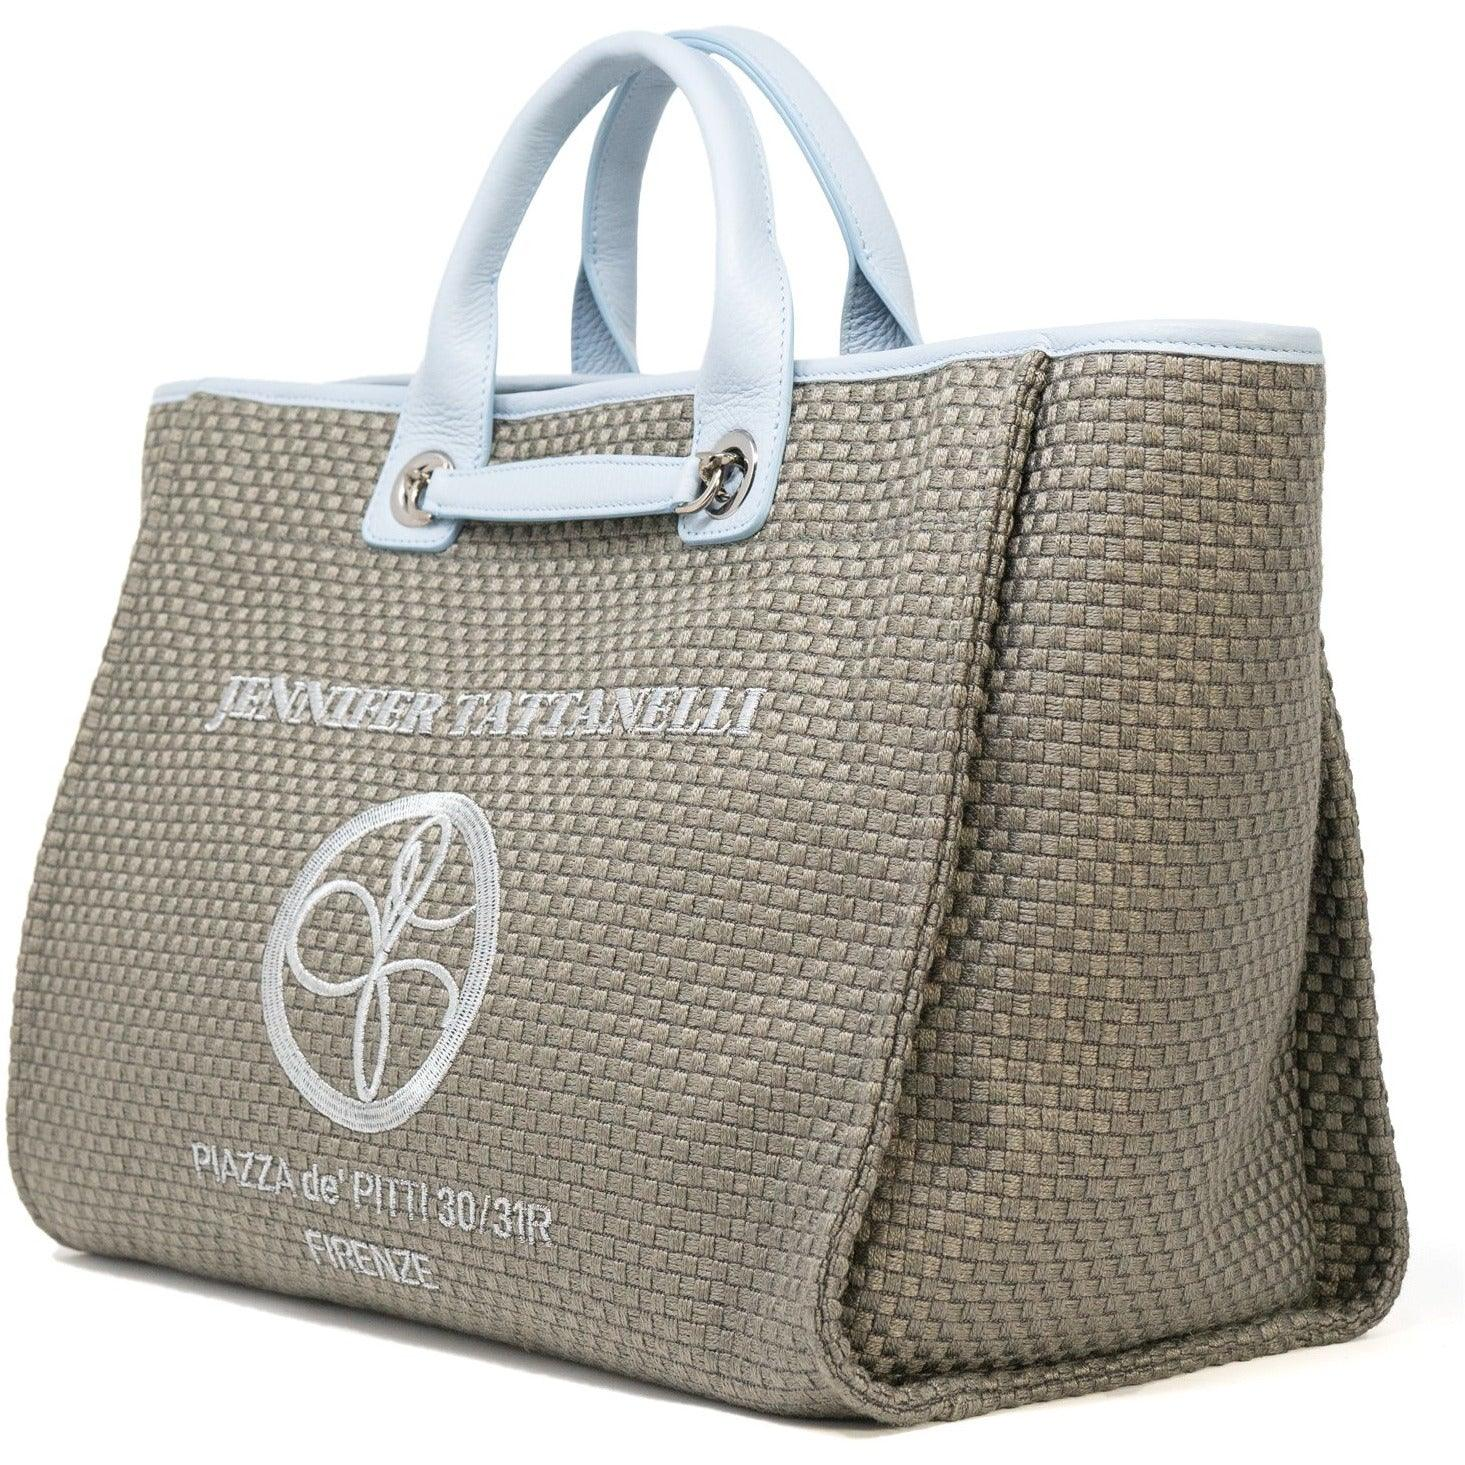 The Hamptons Large Shopping Bag in Sky Blue